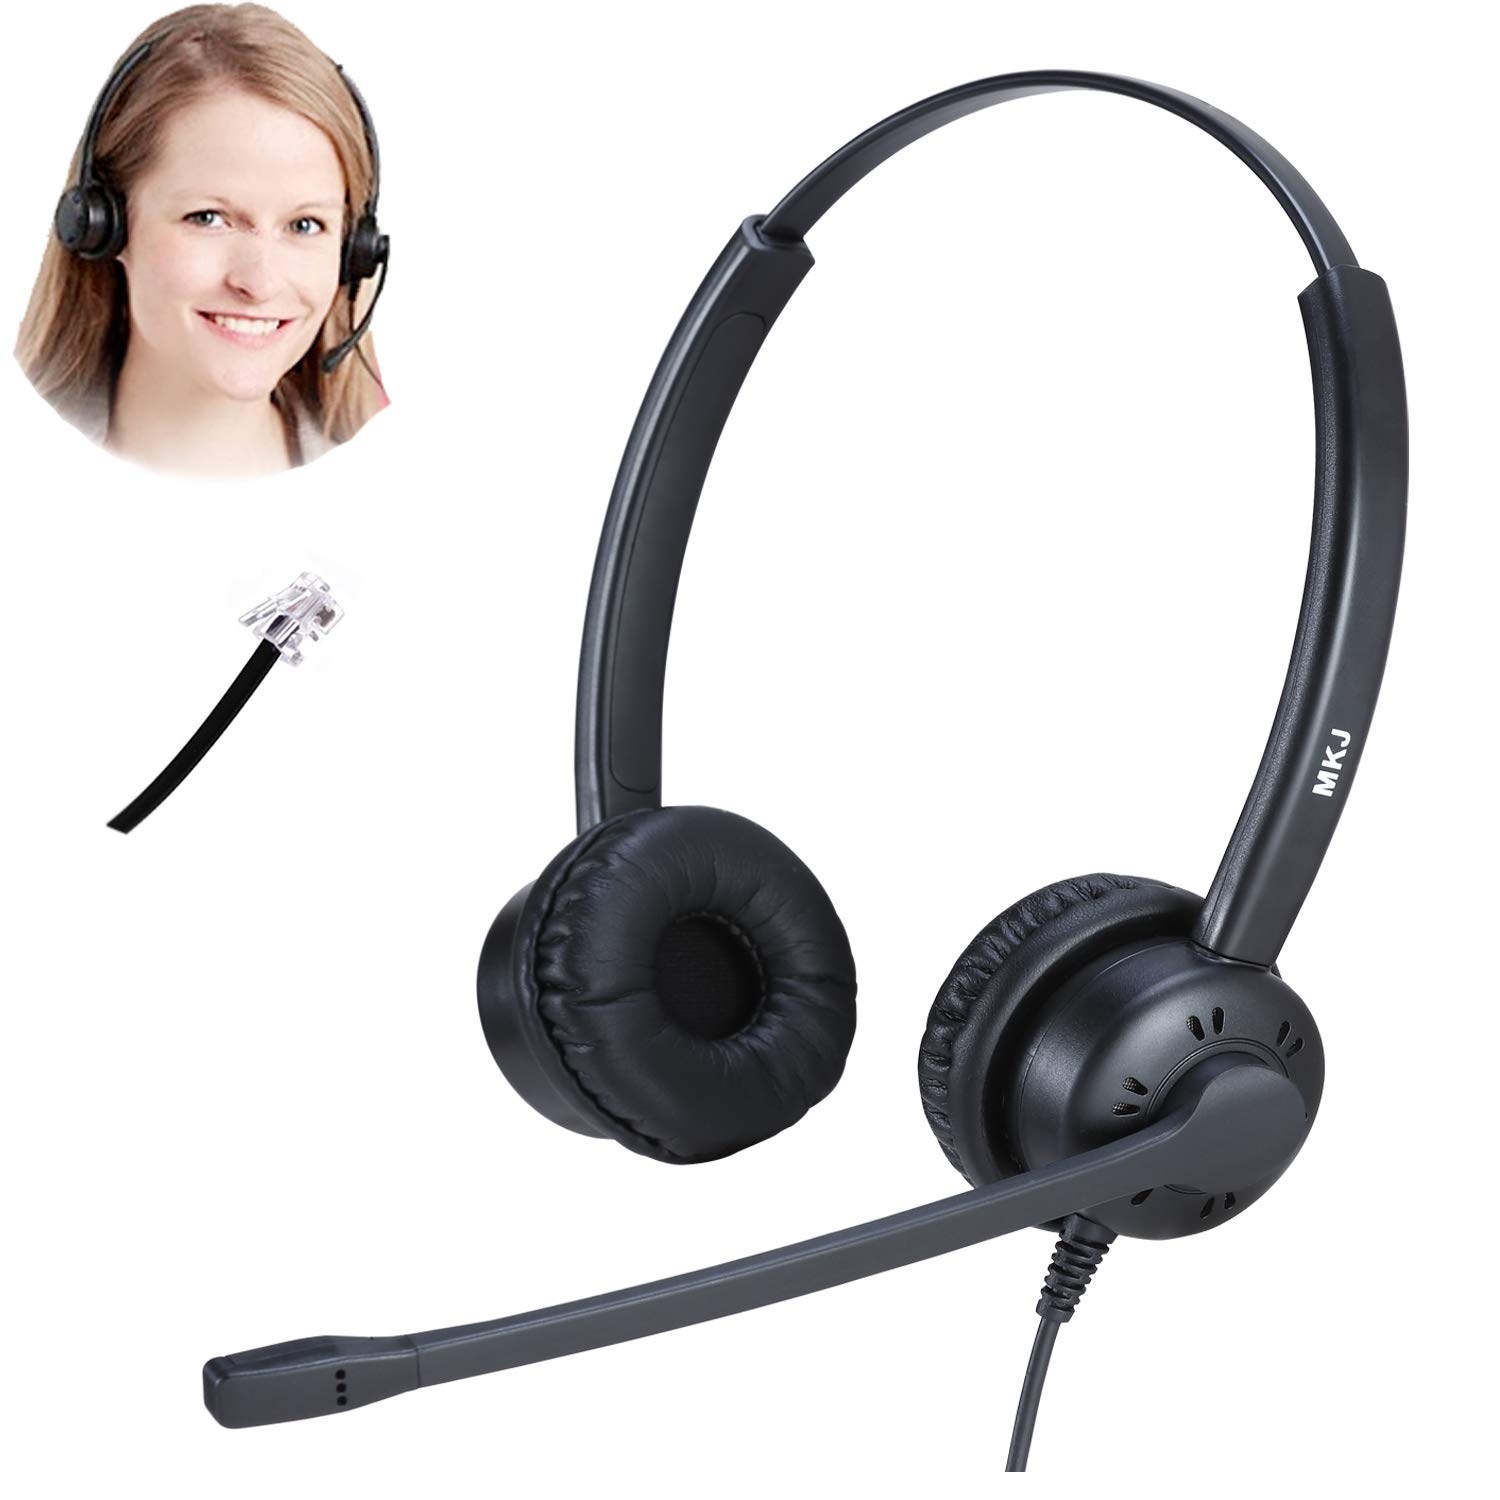 Telephone Headset Corded RJ9 Dual Ear Phone Headset with Microphone for Altigen Polycom Gigaset Avaya Aastra AudioCodes Toshiba Fanvil Mitel Nortel